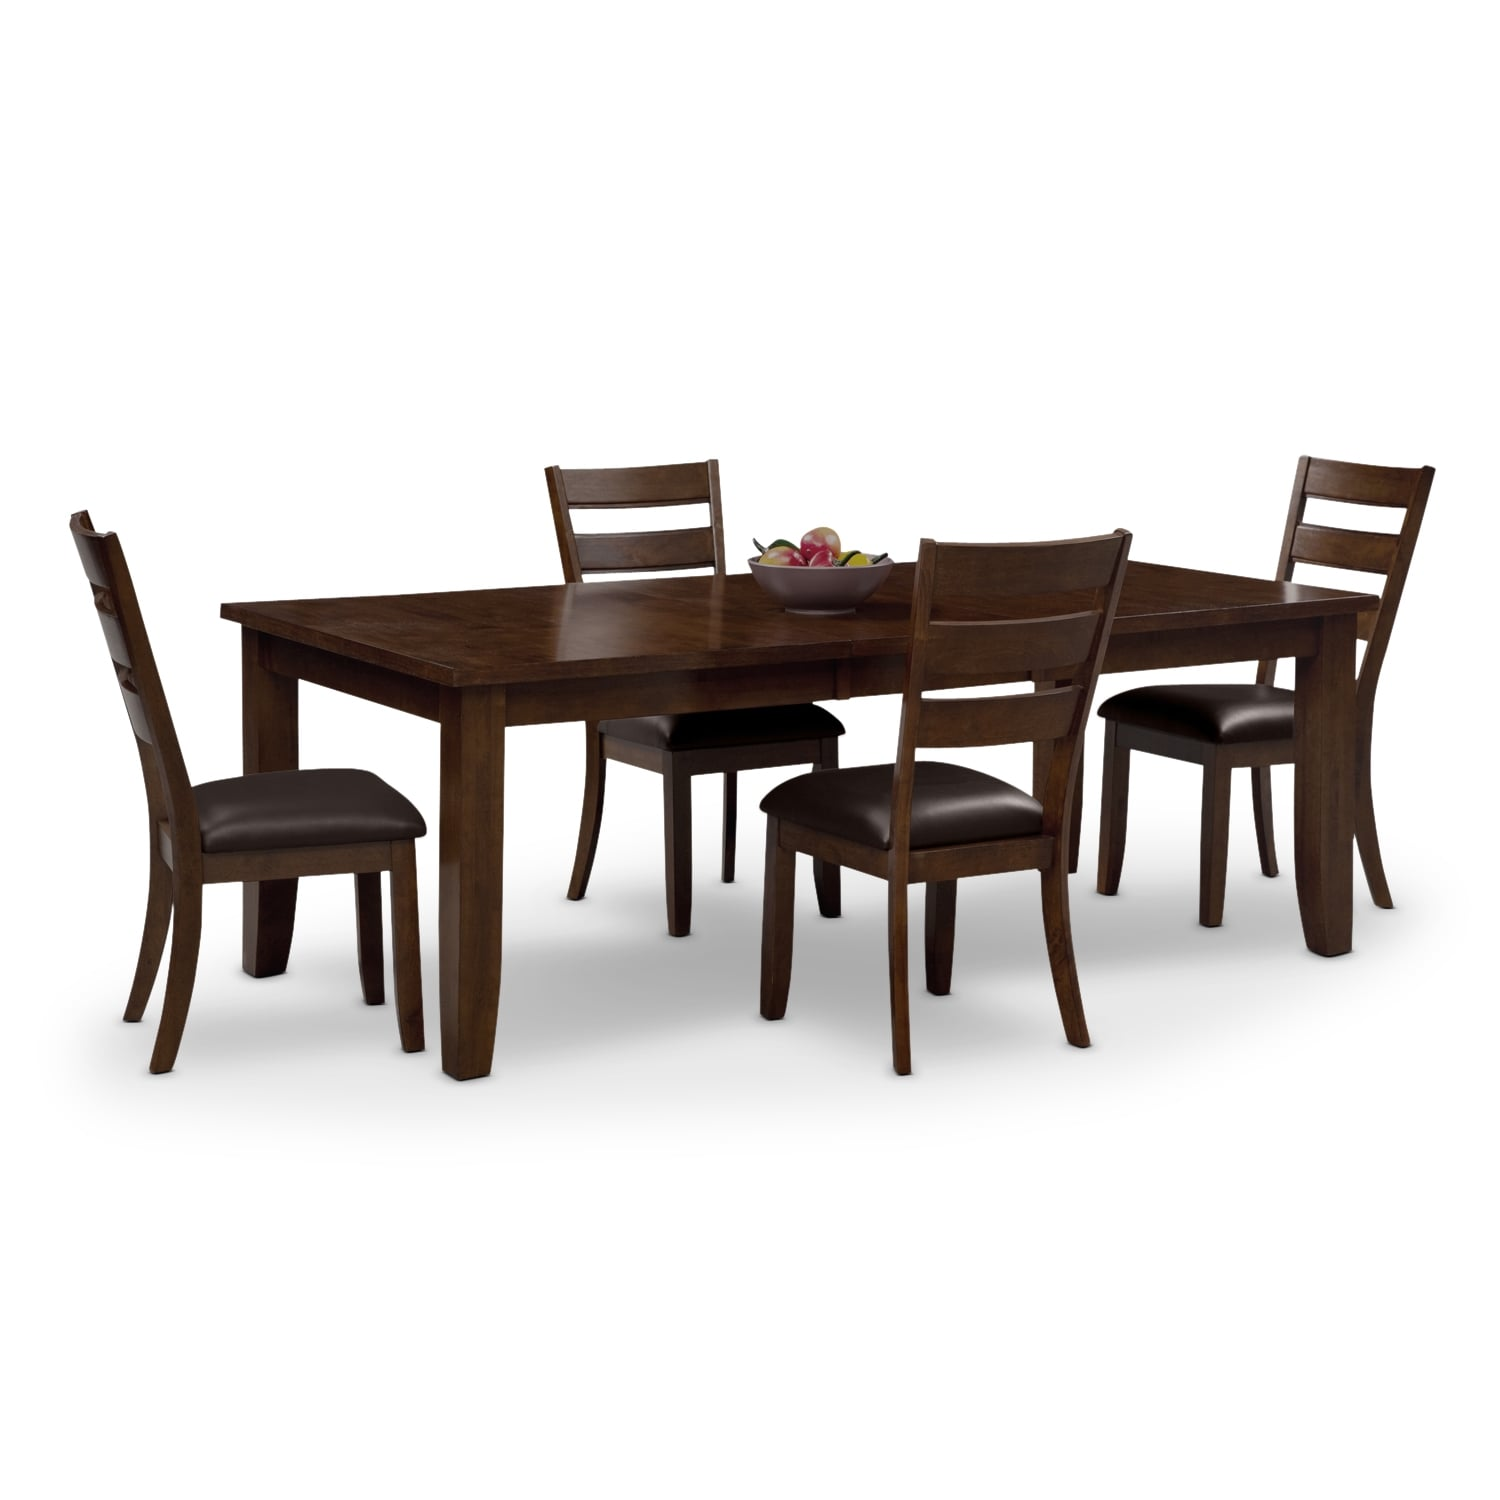 Room And Board Dining Chairs: Abaco Table And 4 Chairs - Brown